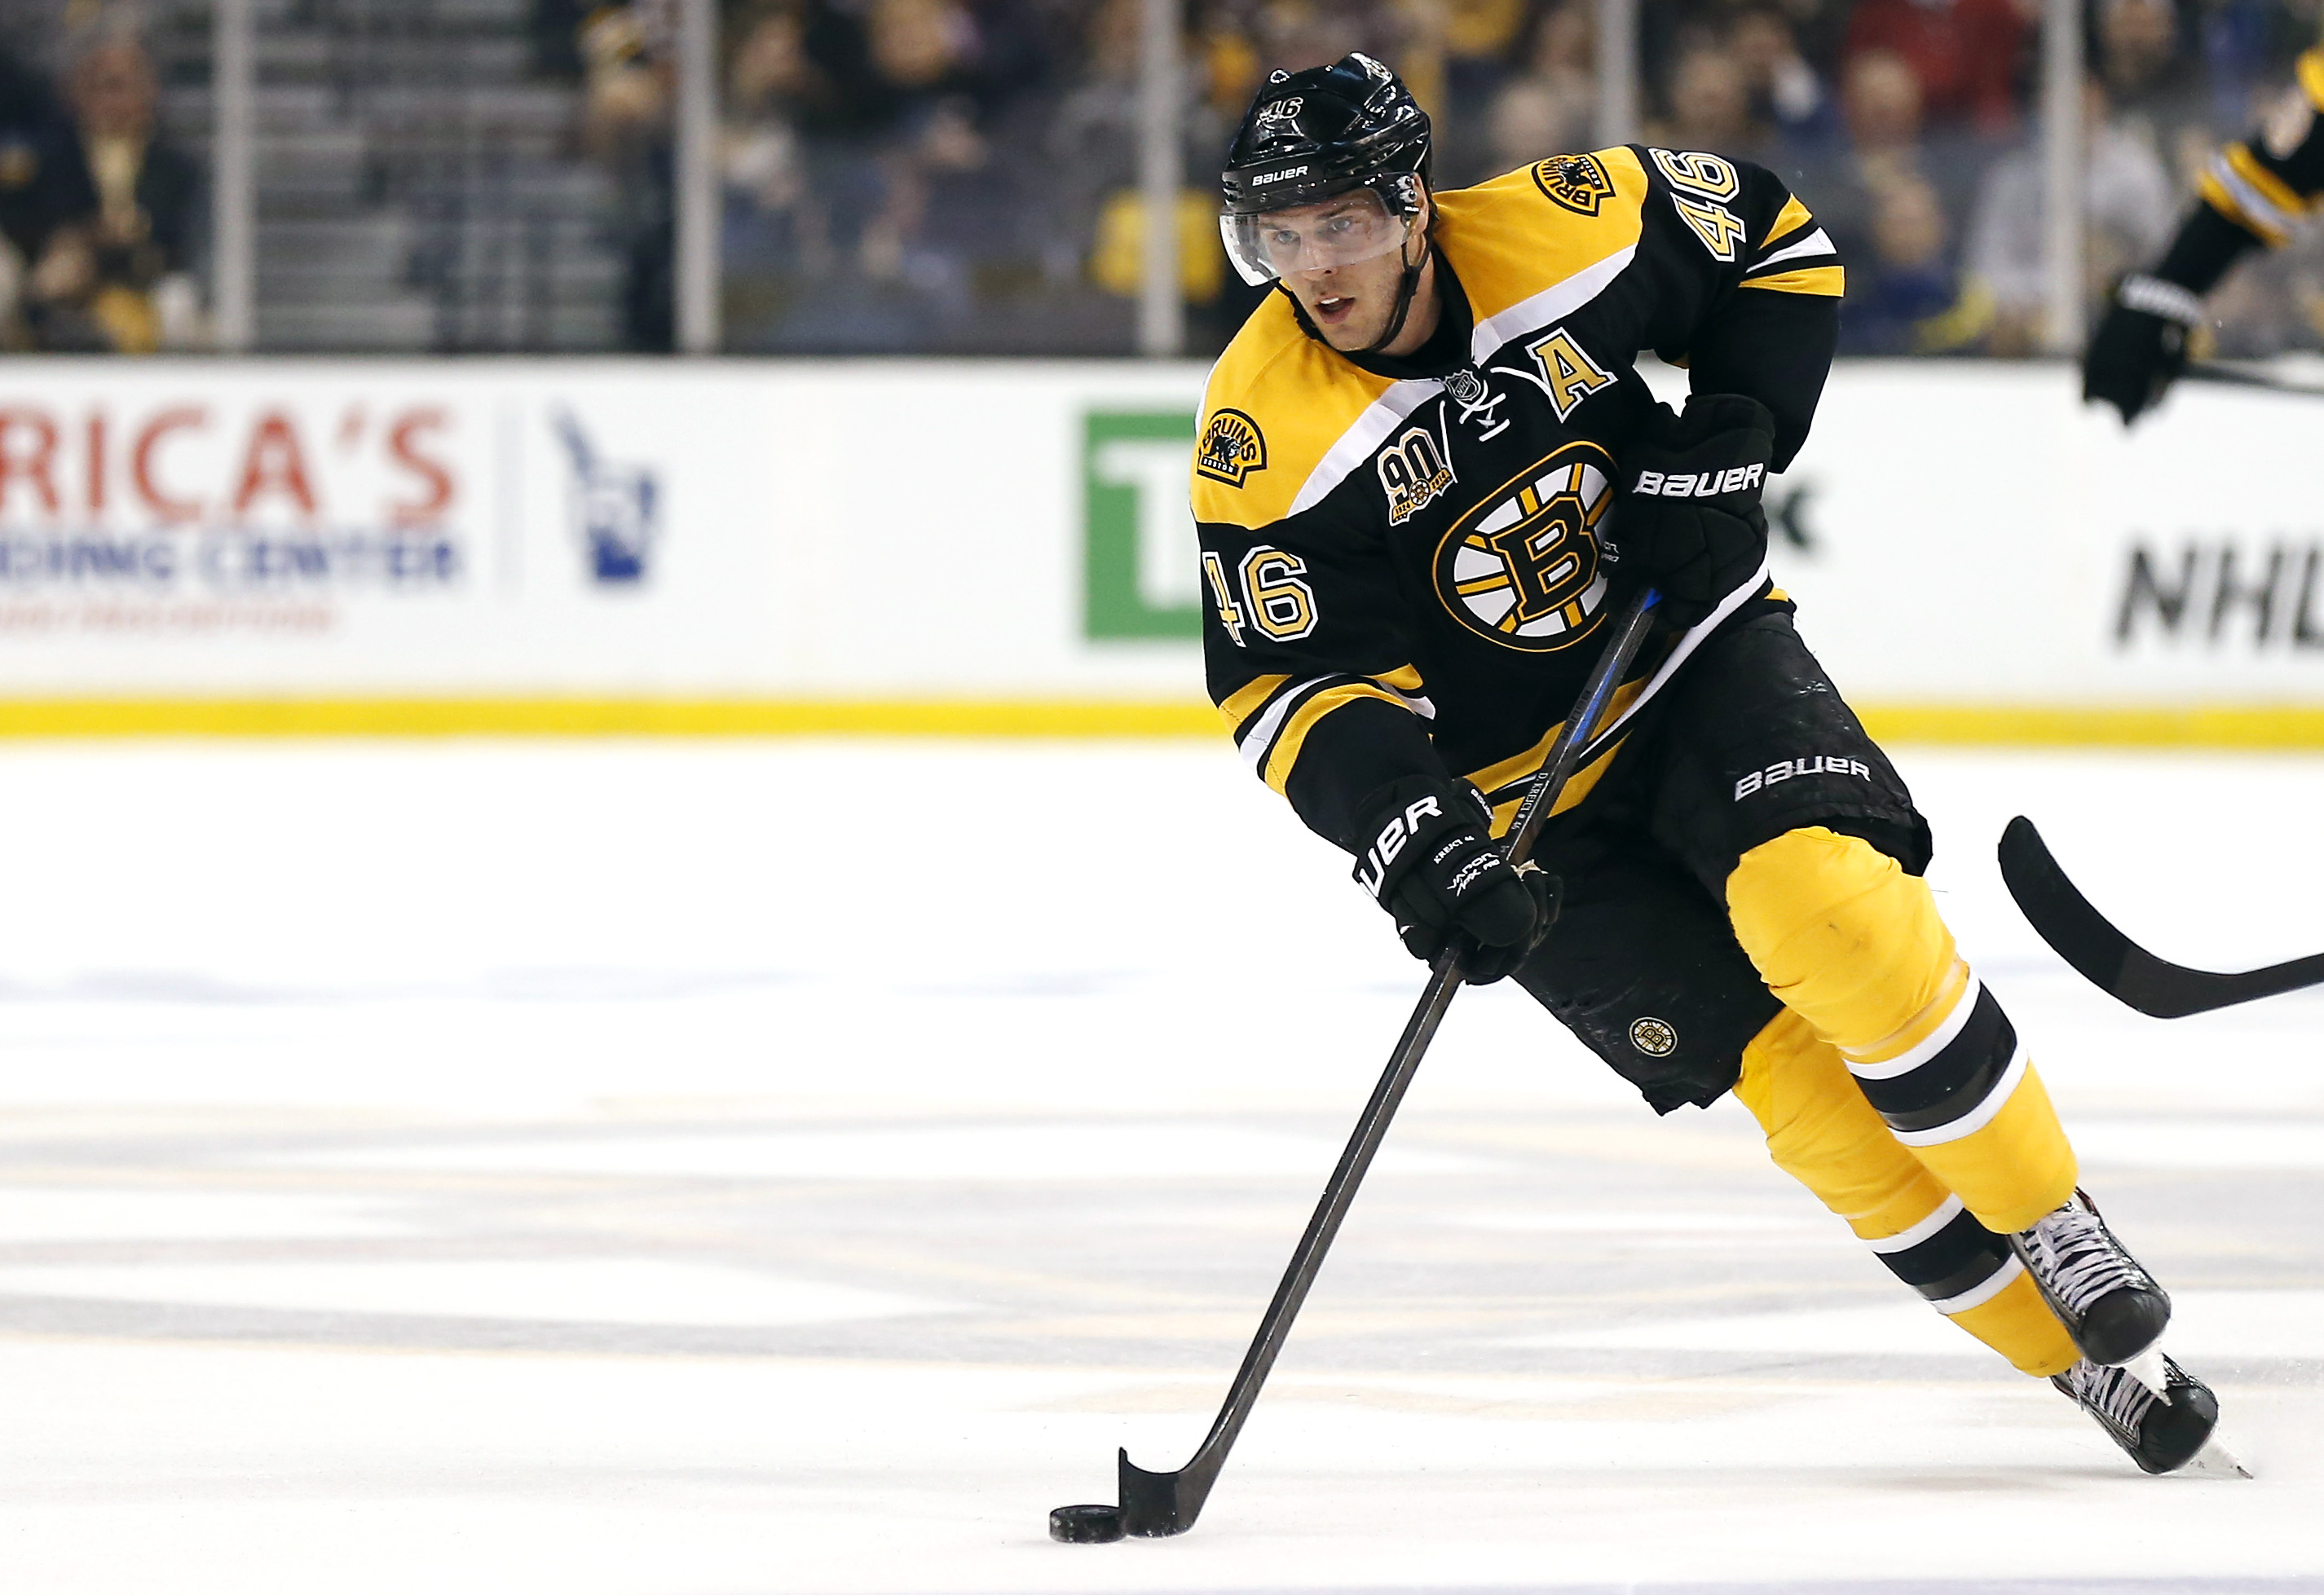 Boston Bruins' David Krejci skates against the Detroit Red Wings during the second period of a first-round NHL playoff hockey game in Boston Friday, April 18, 2014